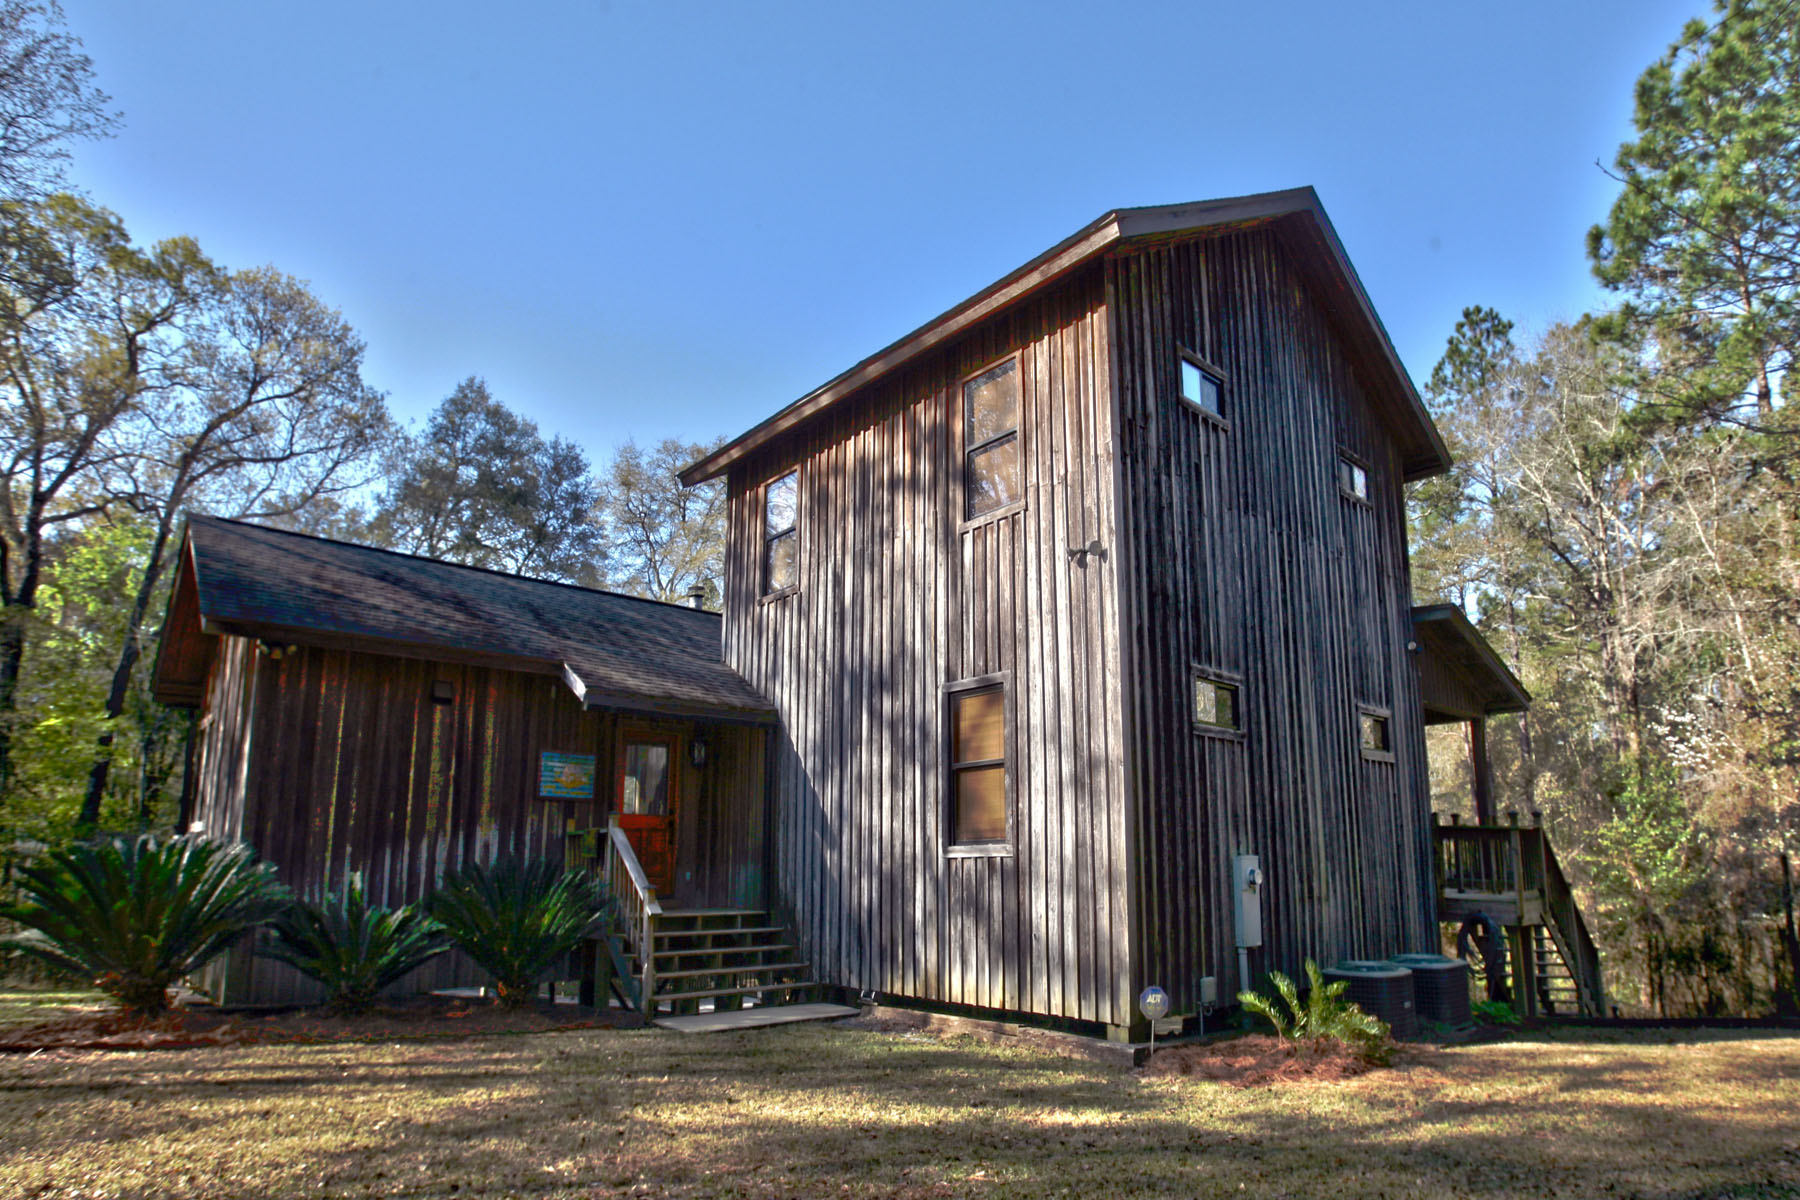 Villa per Vendita alle ore Creek Retreat in Baker County, GA 2454 Fish Camp Road Newton, Georgia 39870 Stati Uniti